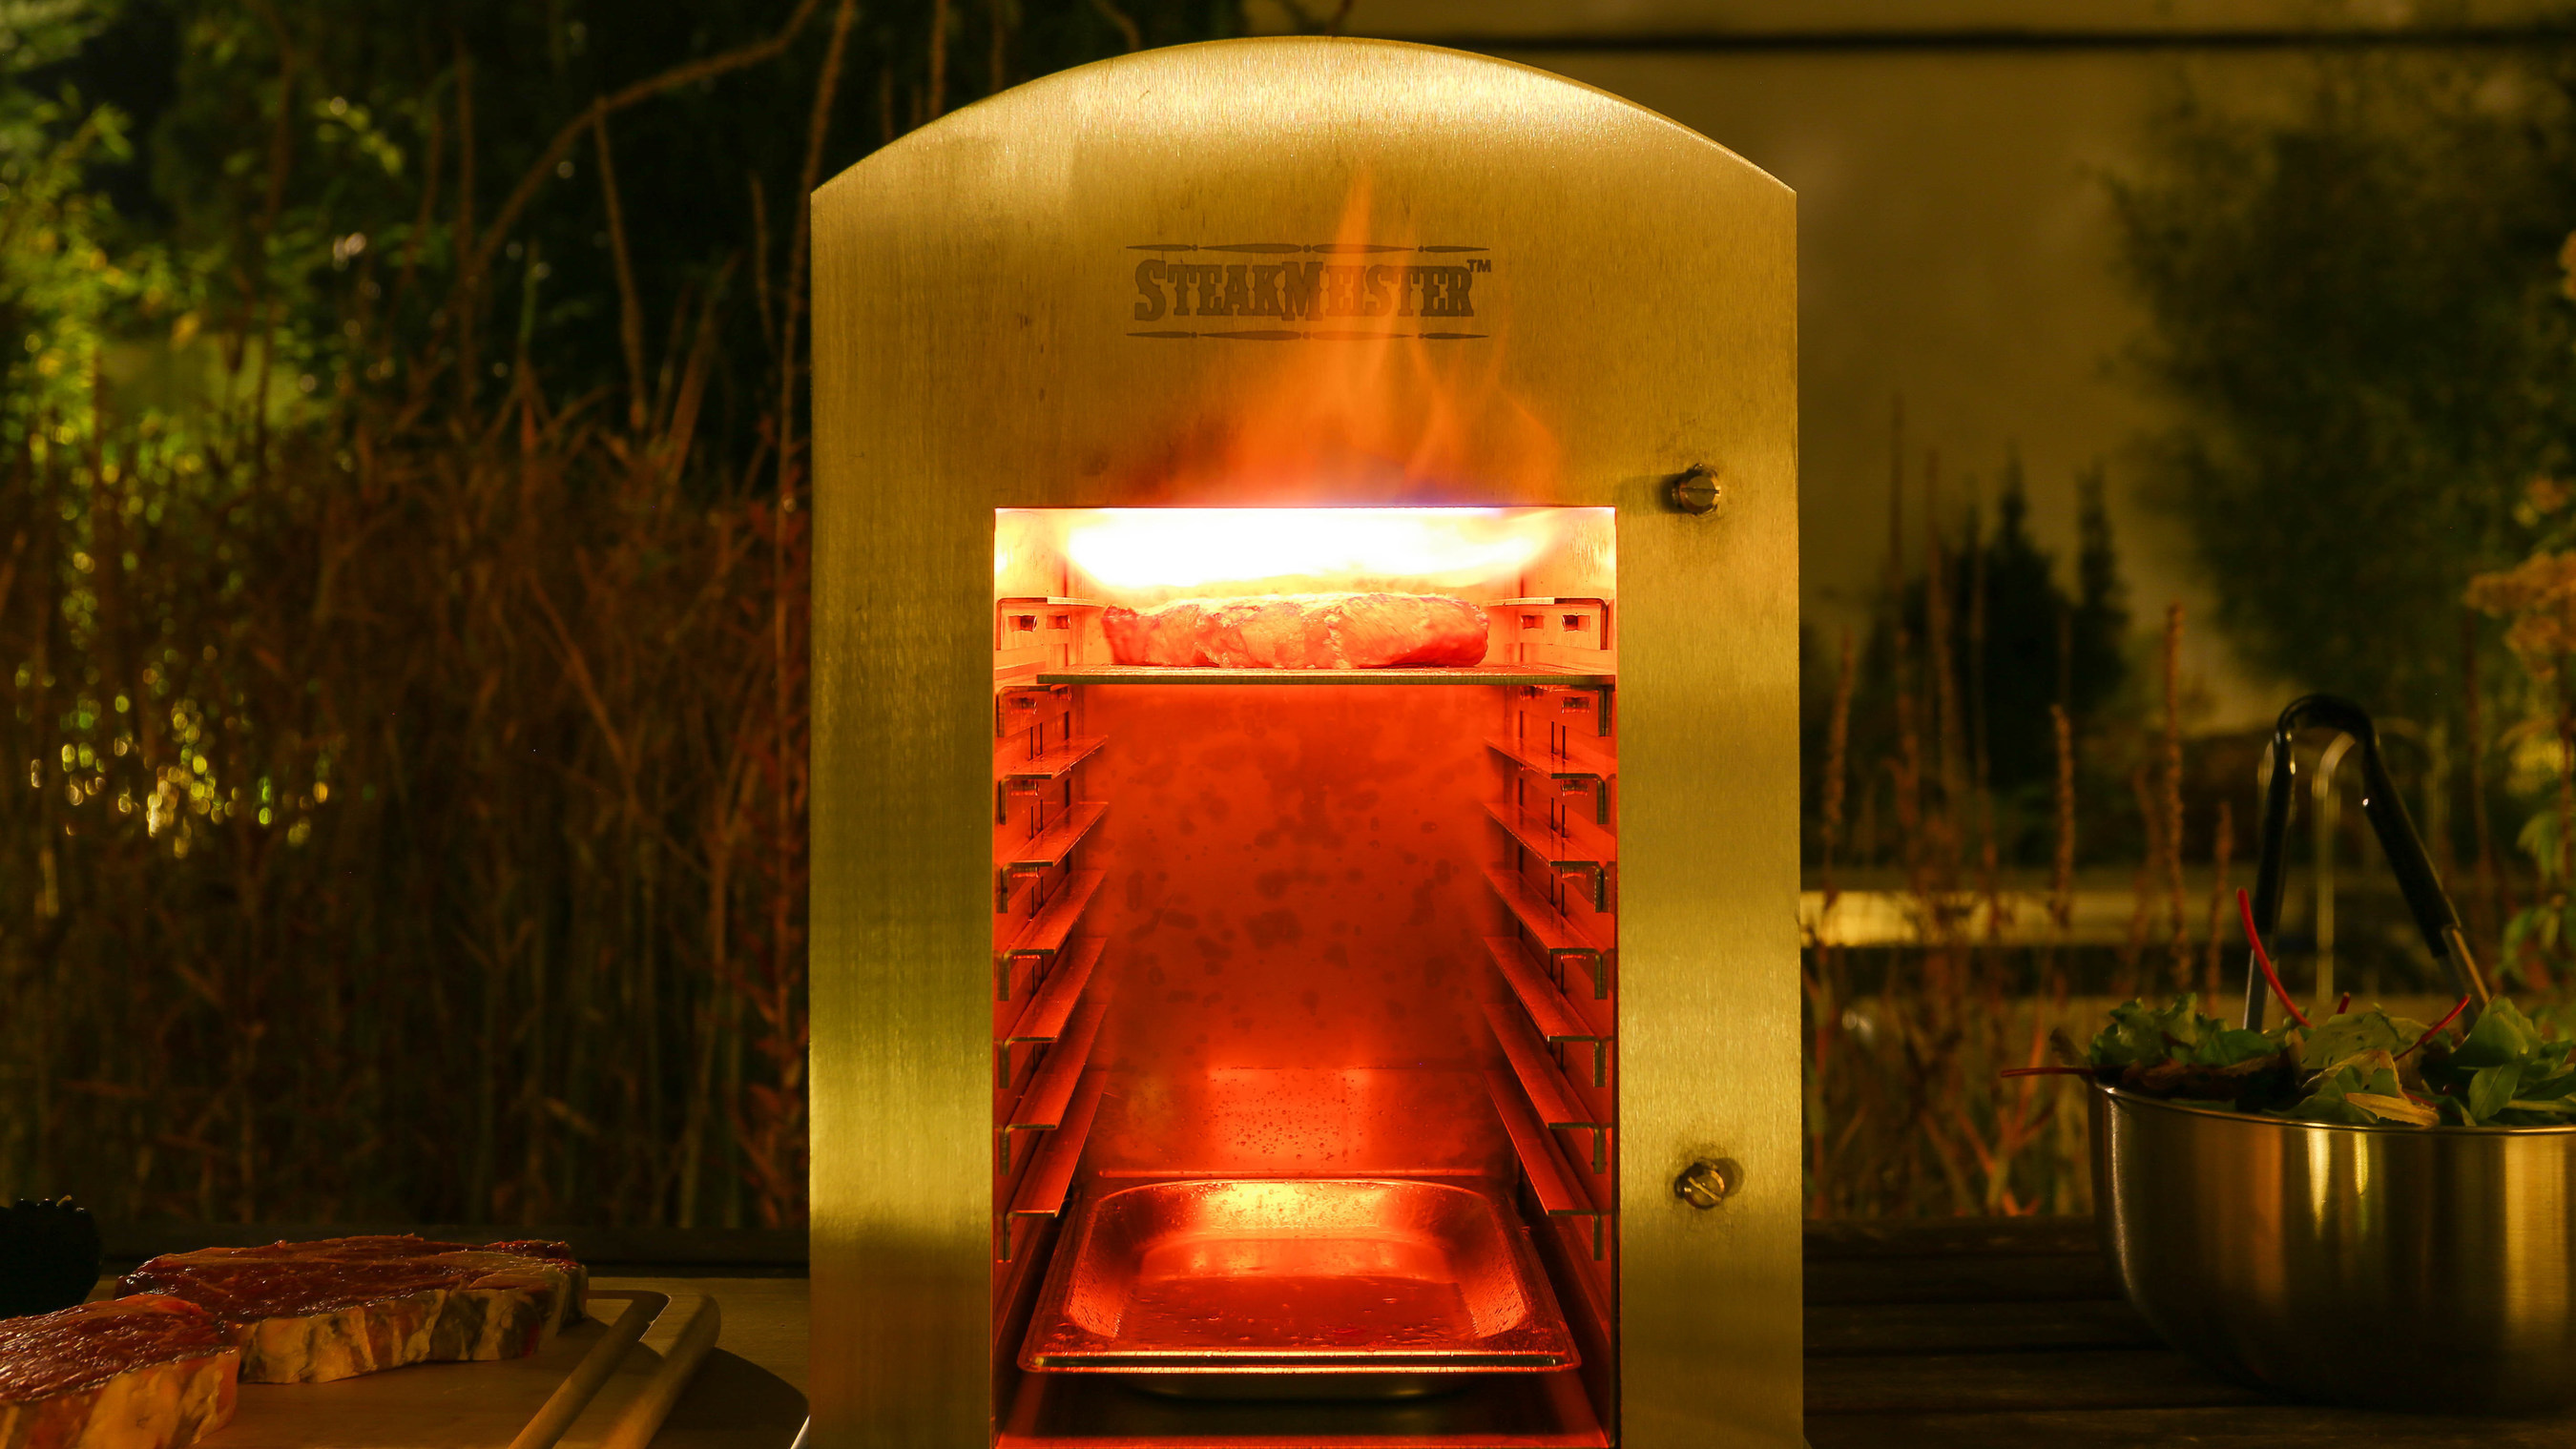 SteakMeister, Inc. Launches Kickstarter to Bring Steakhouse Quality Steaks to Your Backyard